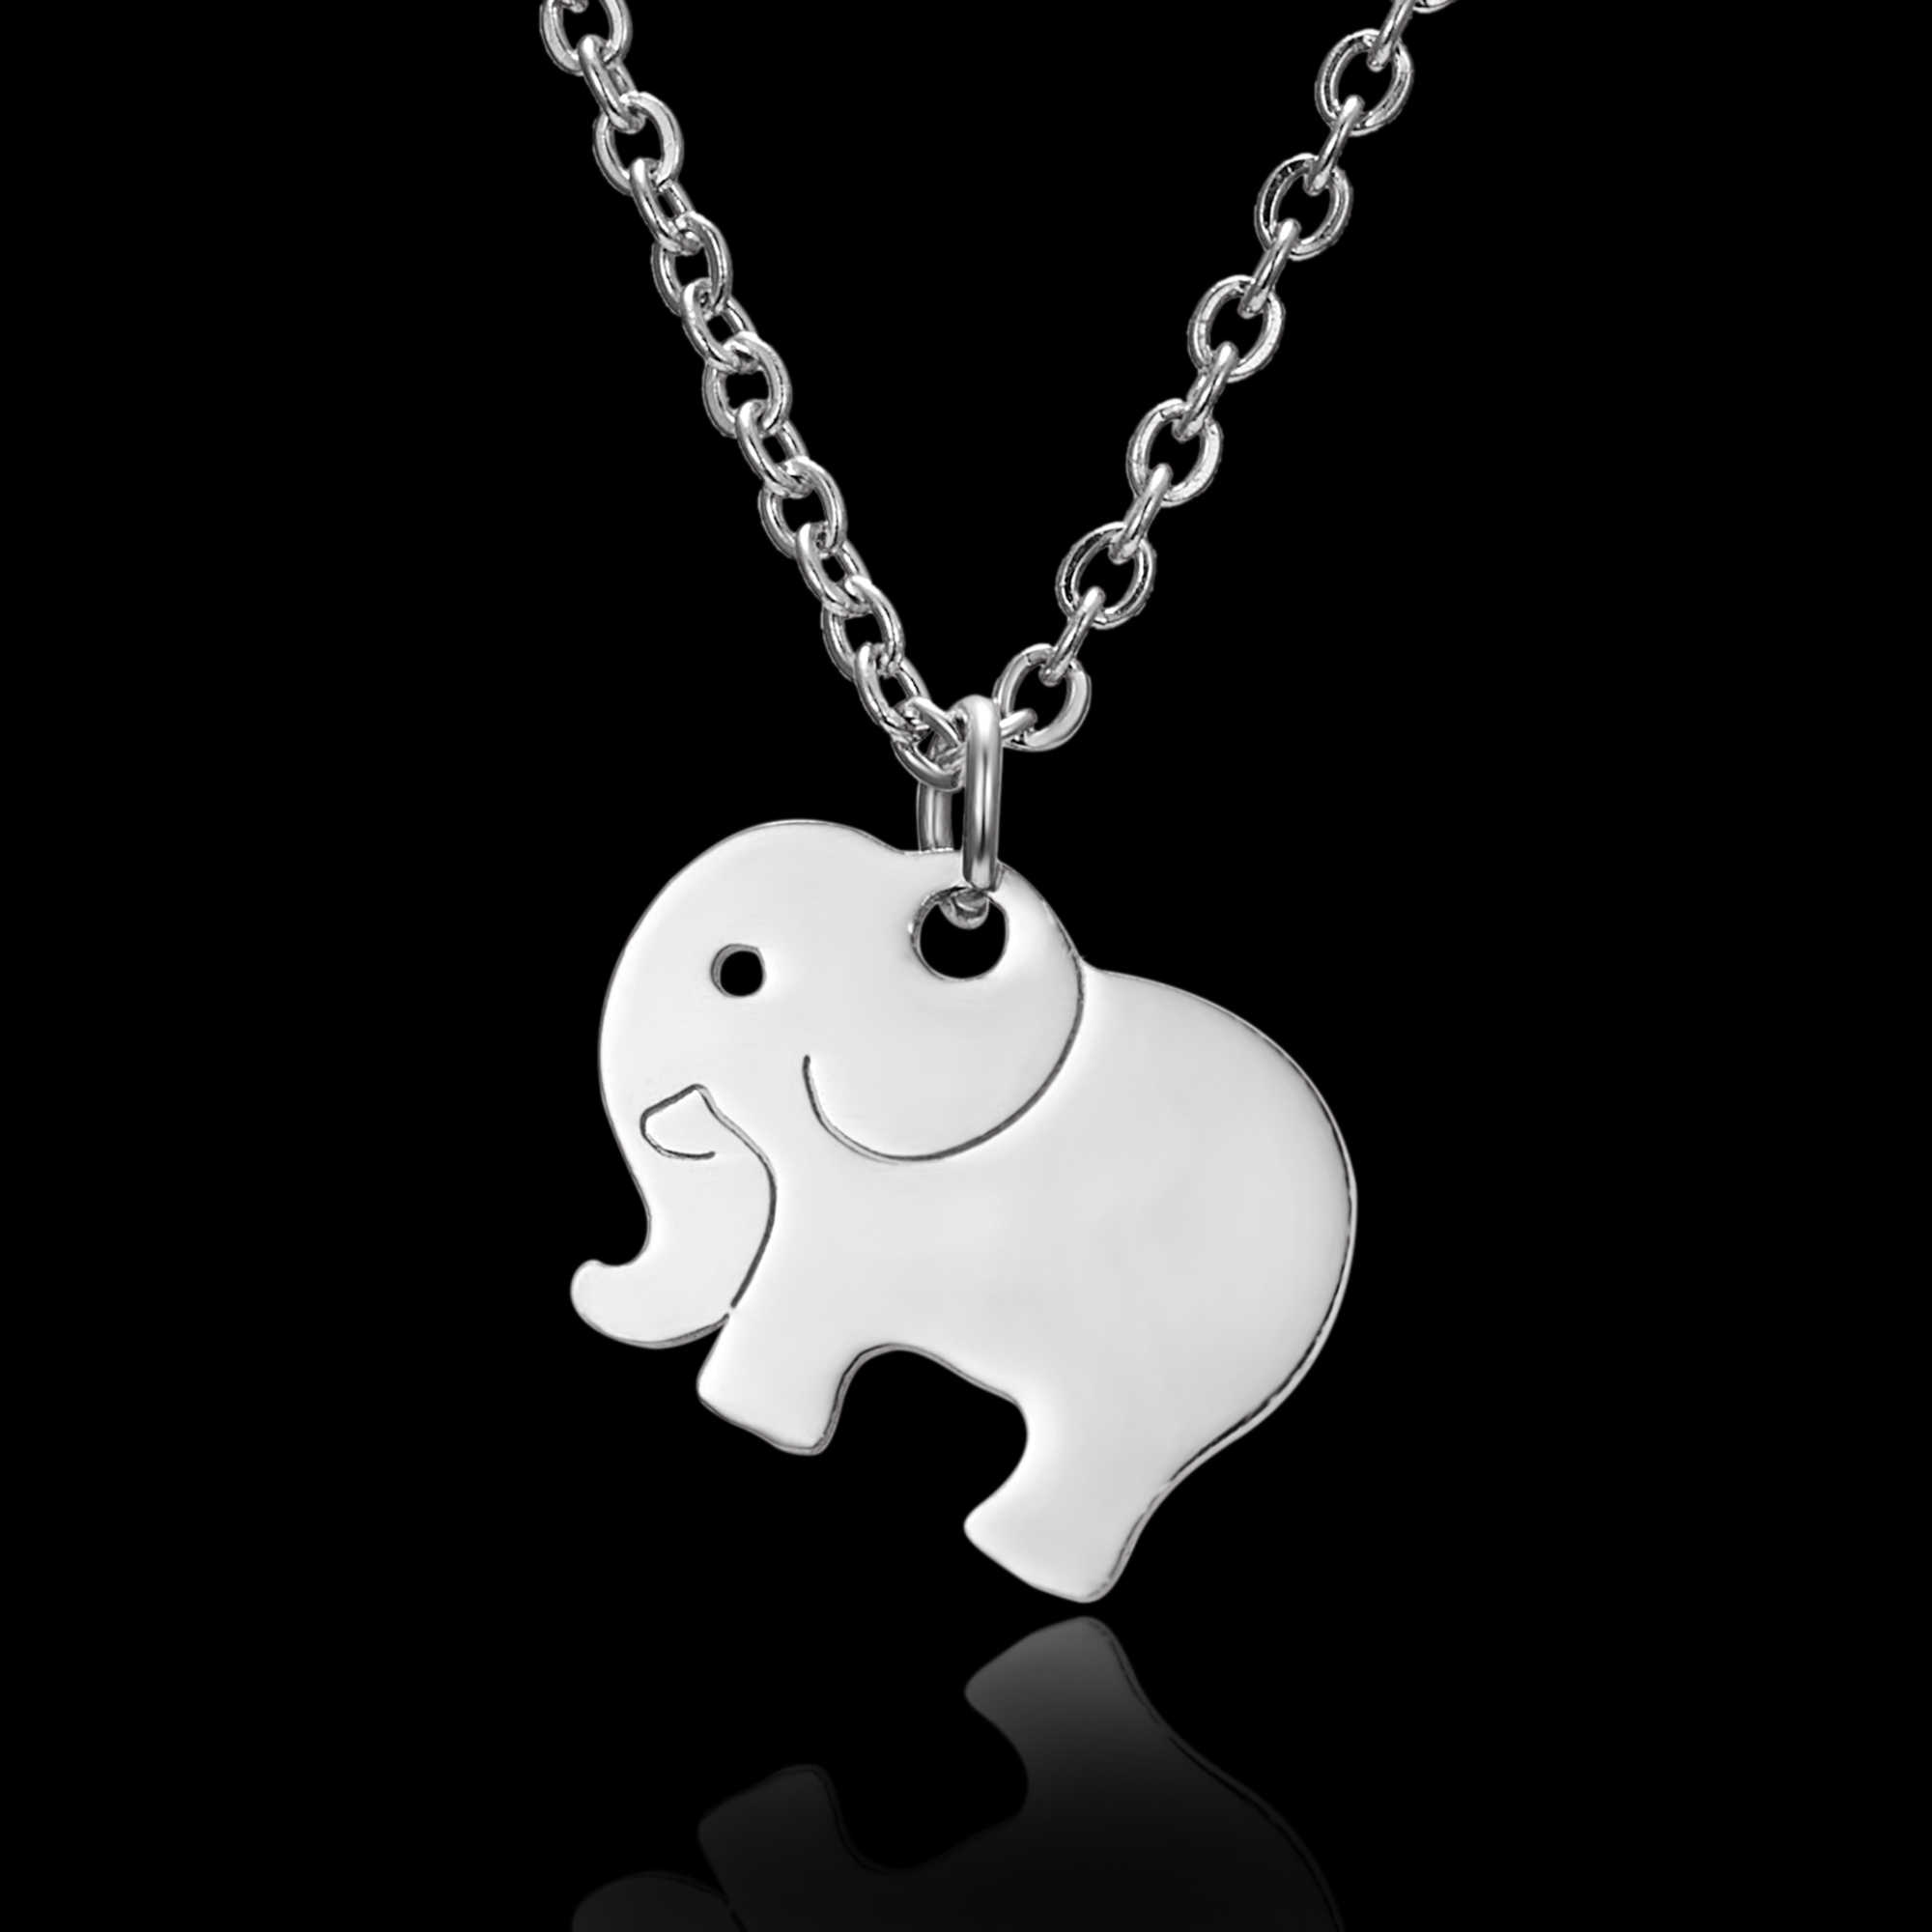 Rinhoo 1PC New Fashion Silver Stainless Steel Cute Elephant Pendant Link Chain Necklace For Women Female Charm Jewelry Gift